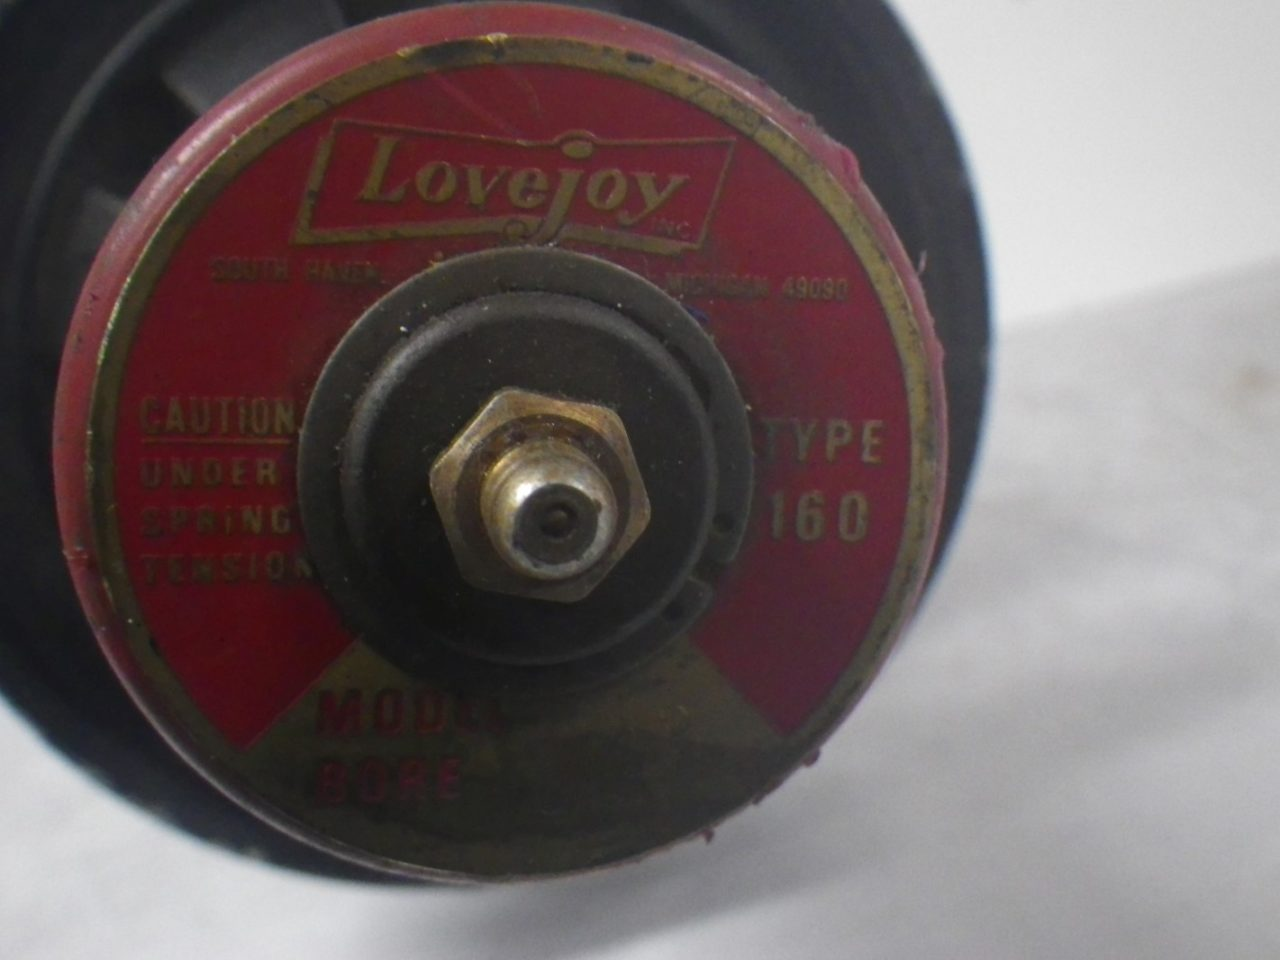 IMGP65595K36MN4B 160 58B GE Motor With LOVEJOY Pulley Type 160 58b 12hp 208-230460v 1725rpm (2)